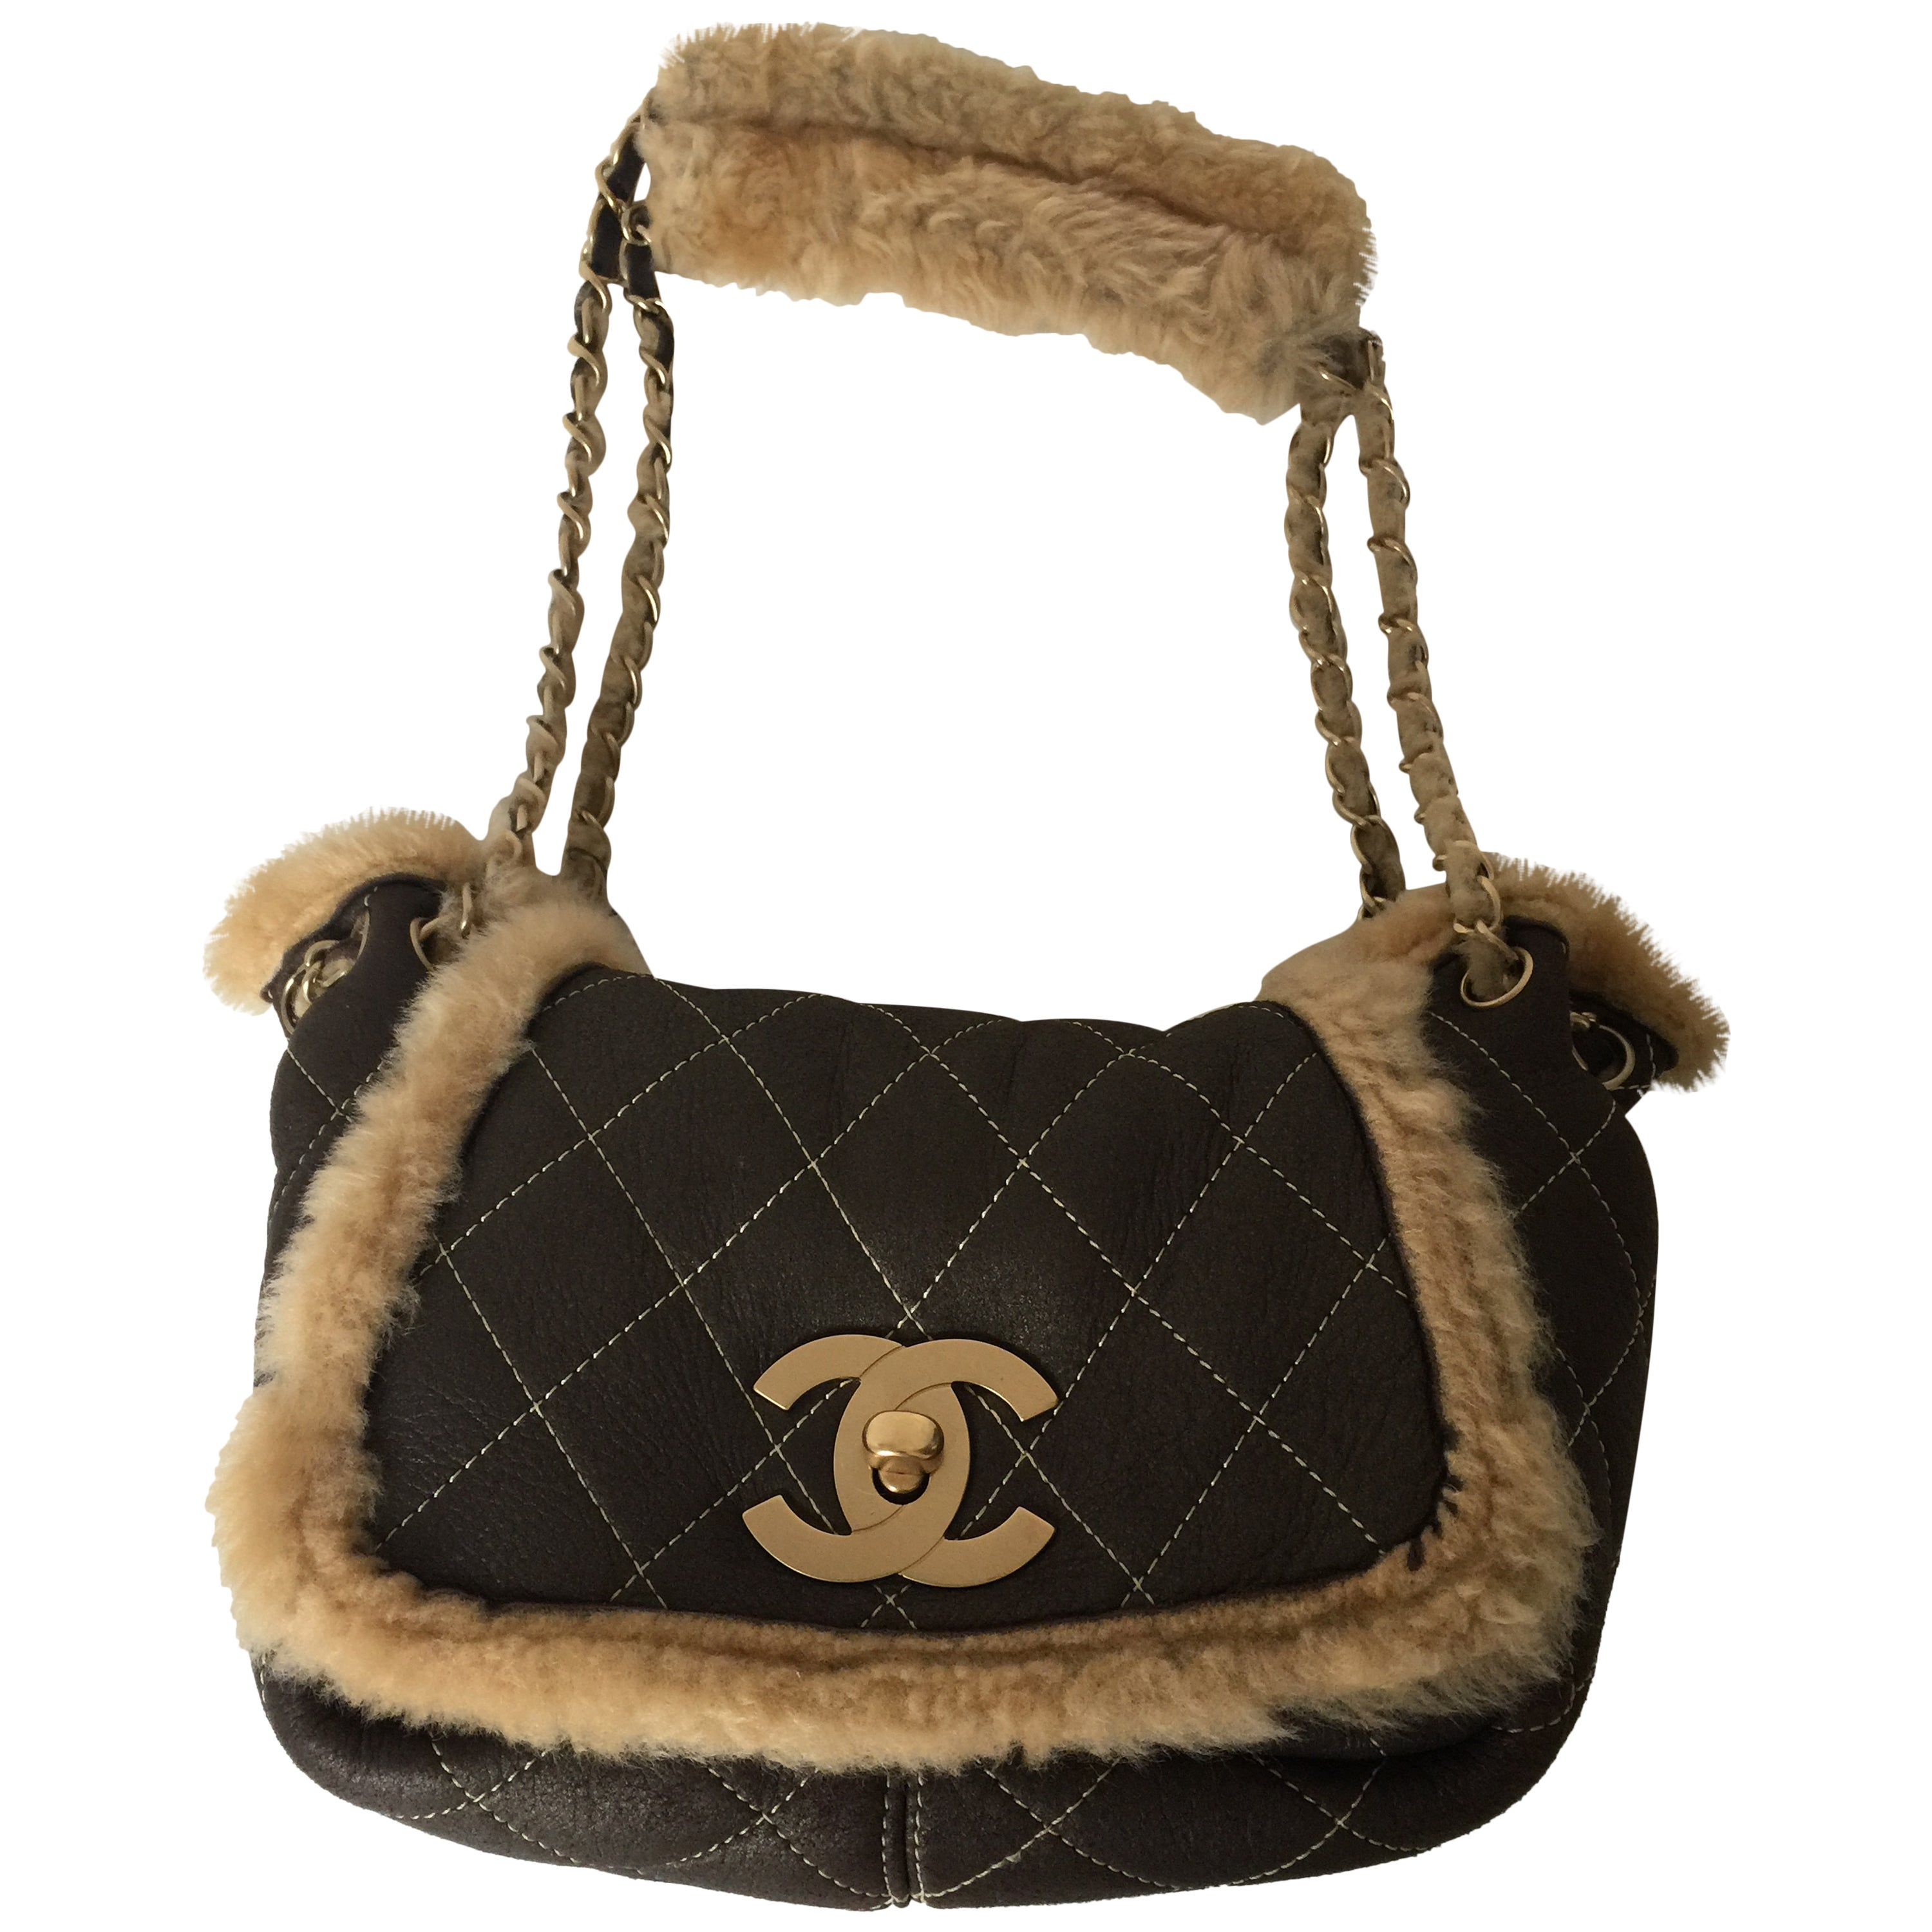 8173d4526ce48e Rare and Chic Chanel Brown Quilted Suede and Shearling Flap Bag For Sale at  1stdibs